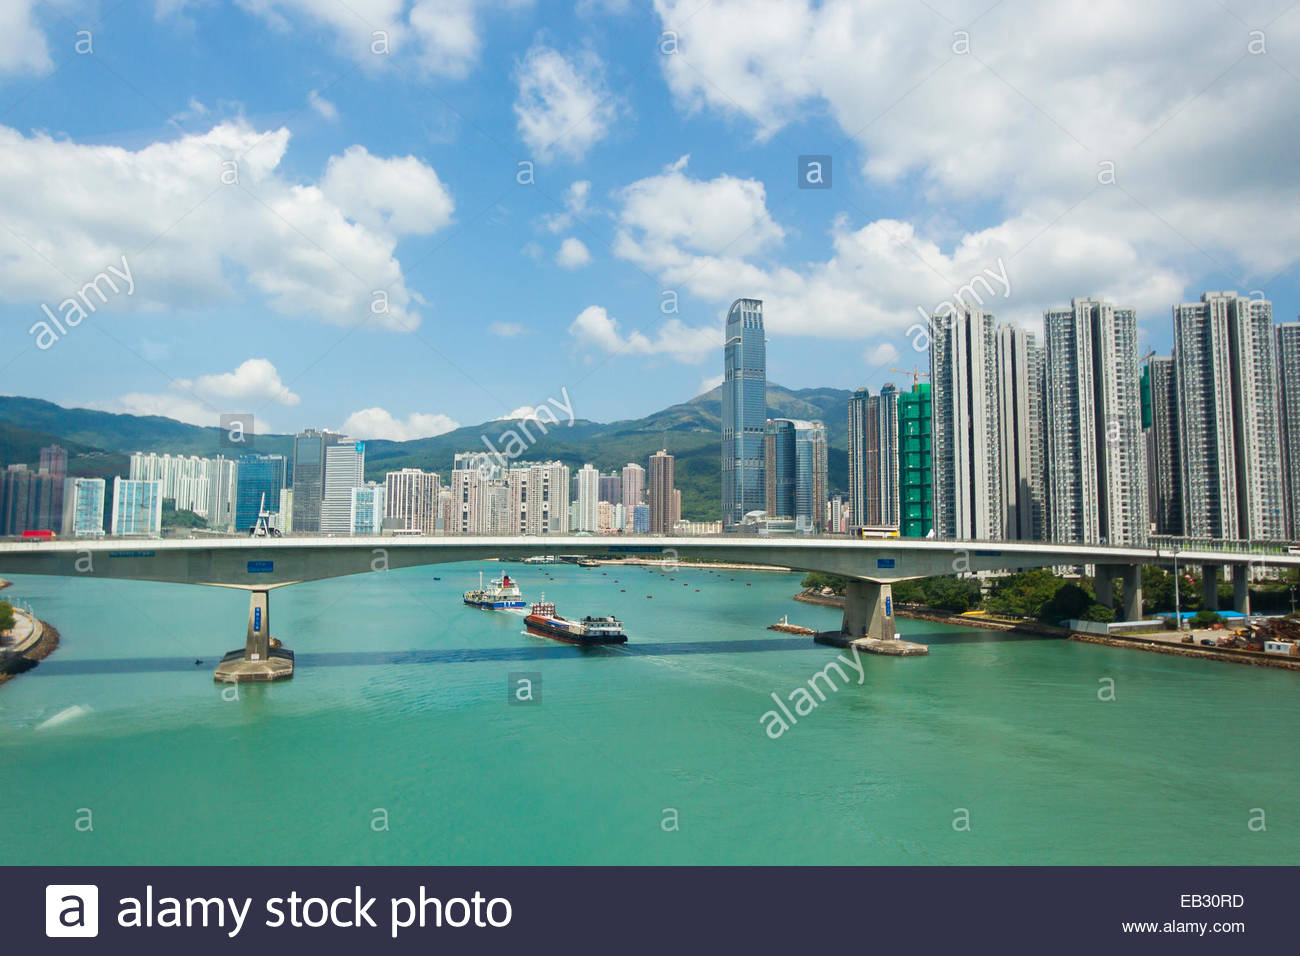 A large modern bridge spanning the width of Victoria Harbor. - Stock Image